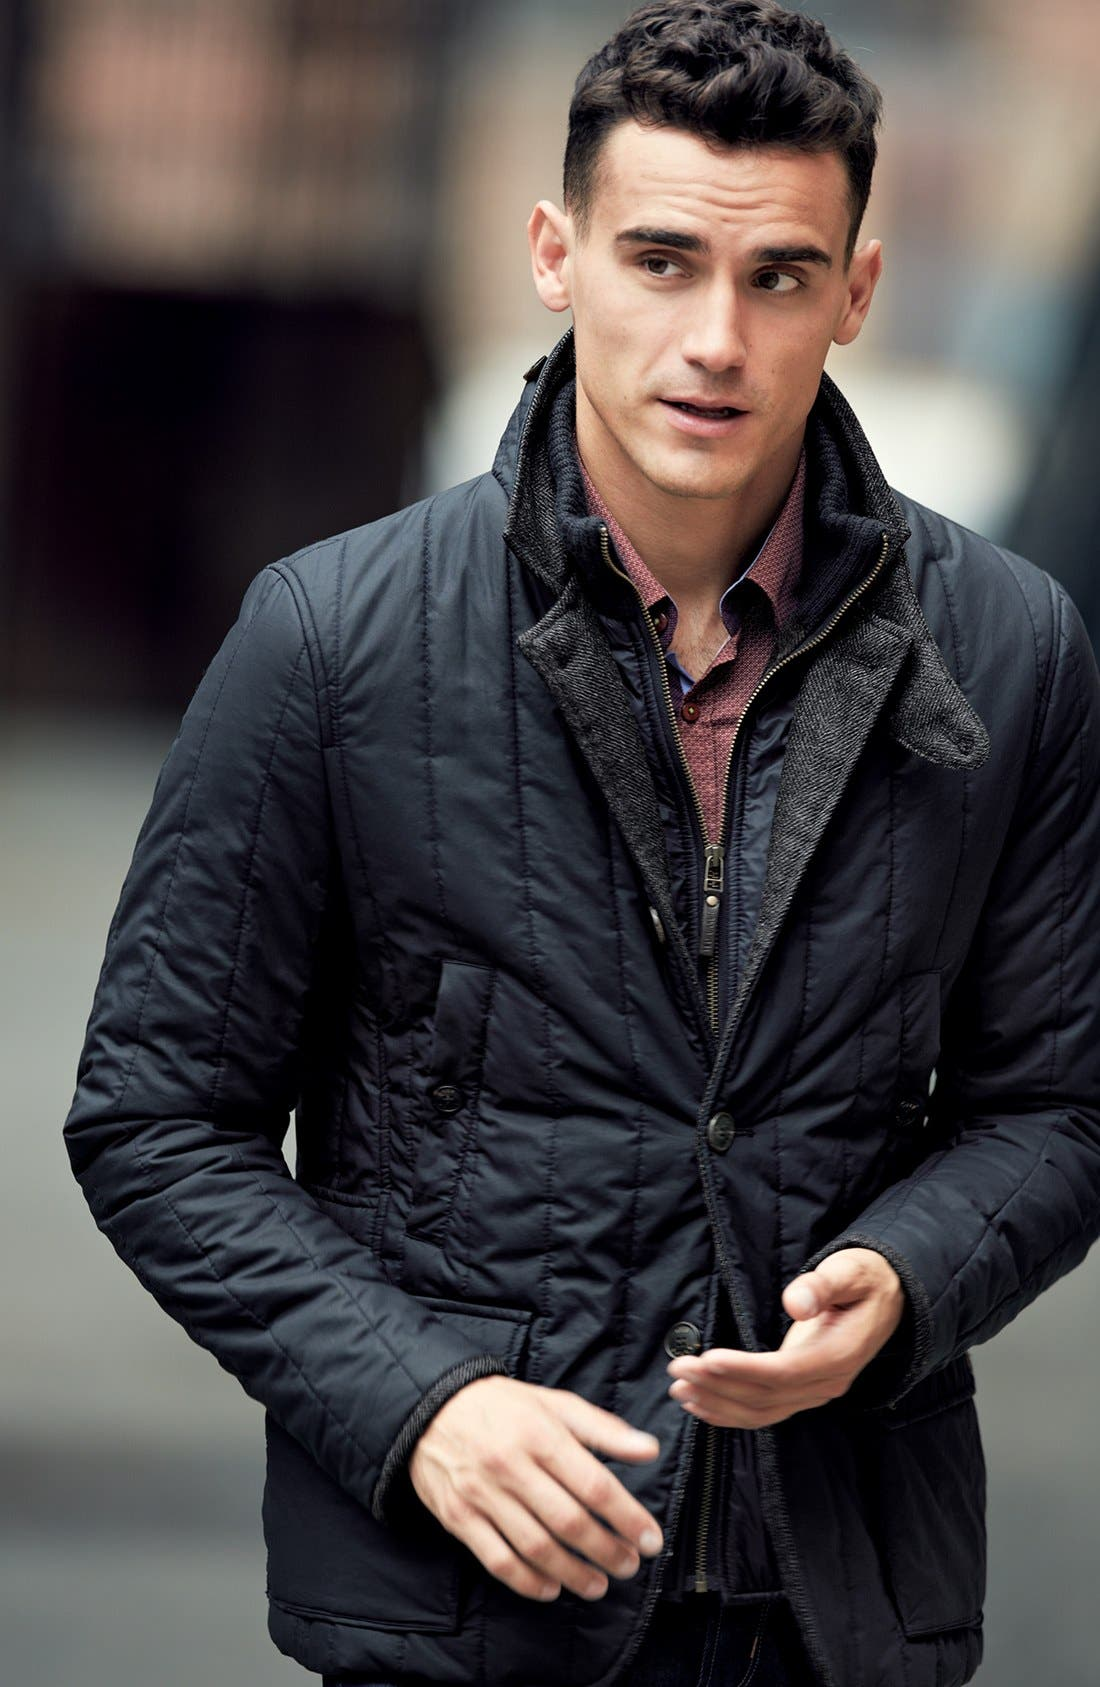 Alternate Image 1 Selected - Ted Baker London Quilted Jacket & Trim Fit Sport Shirt